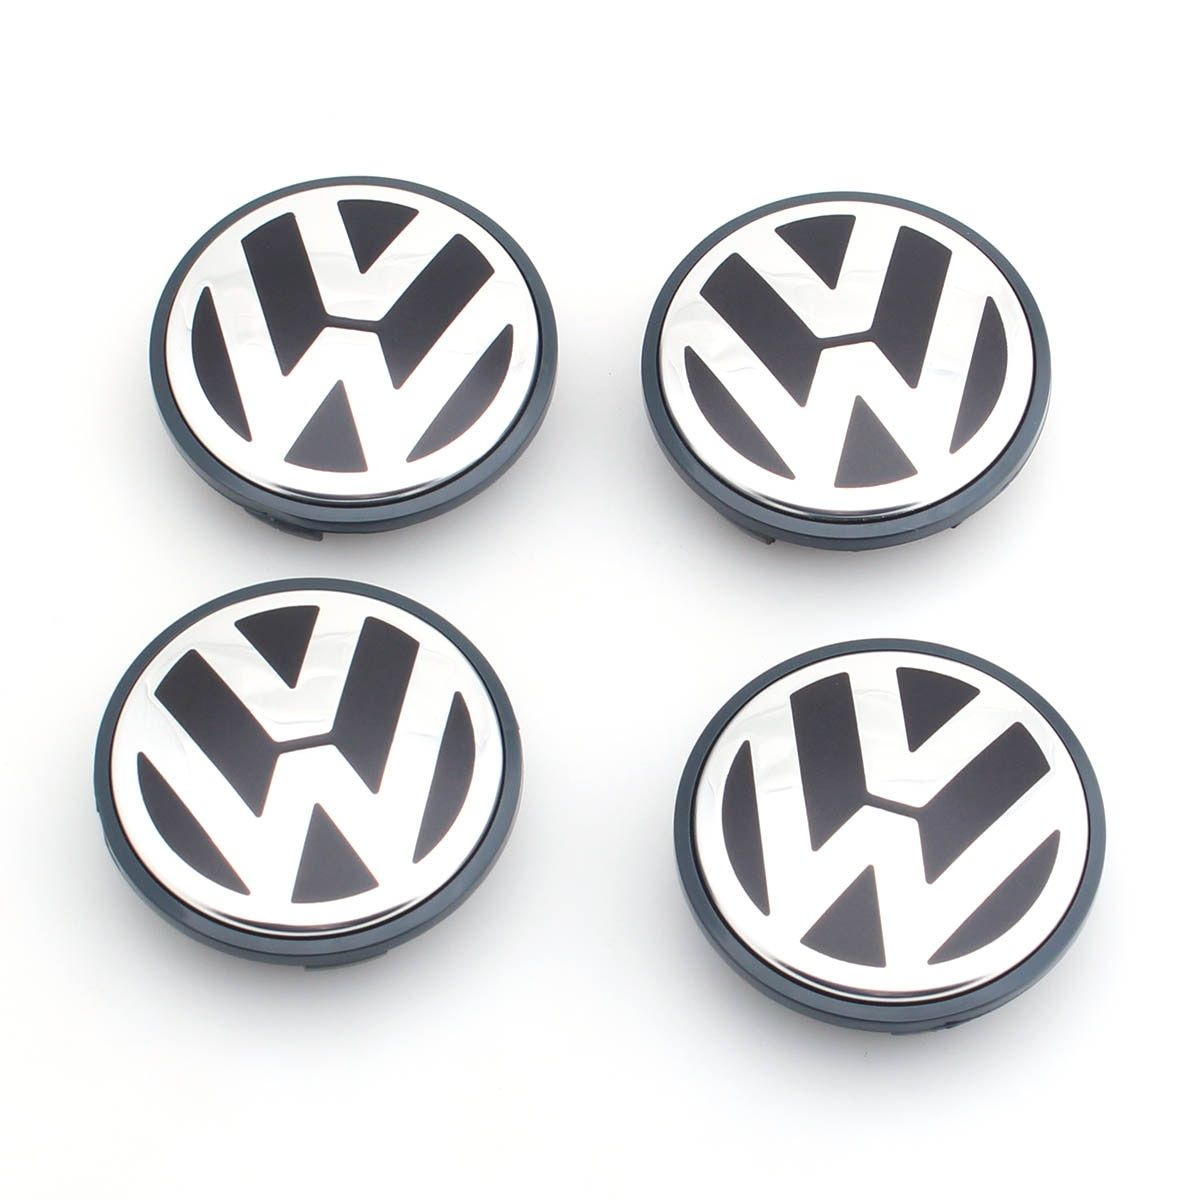 4pcs/set OEM 65mm Wheel Center Cap Logo Hub Cover Badge Emblem for VW Jetta MK5 Golf Passat 3B7 601 171